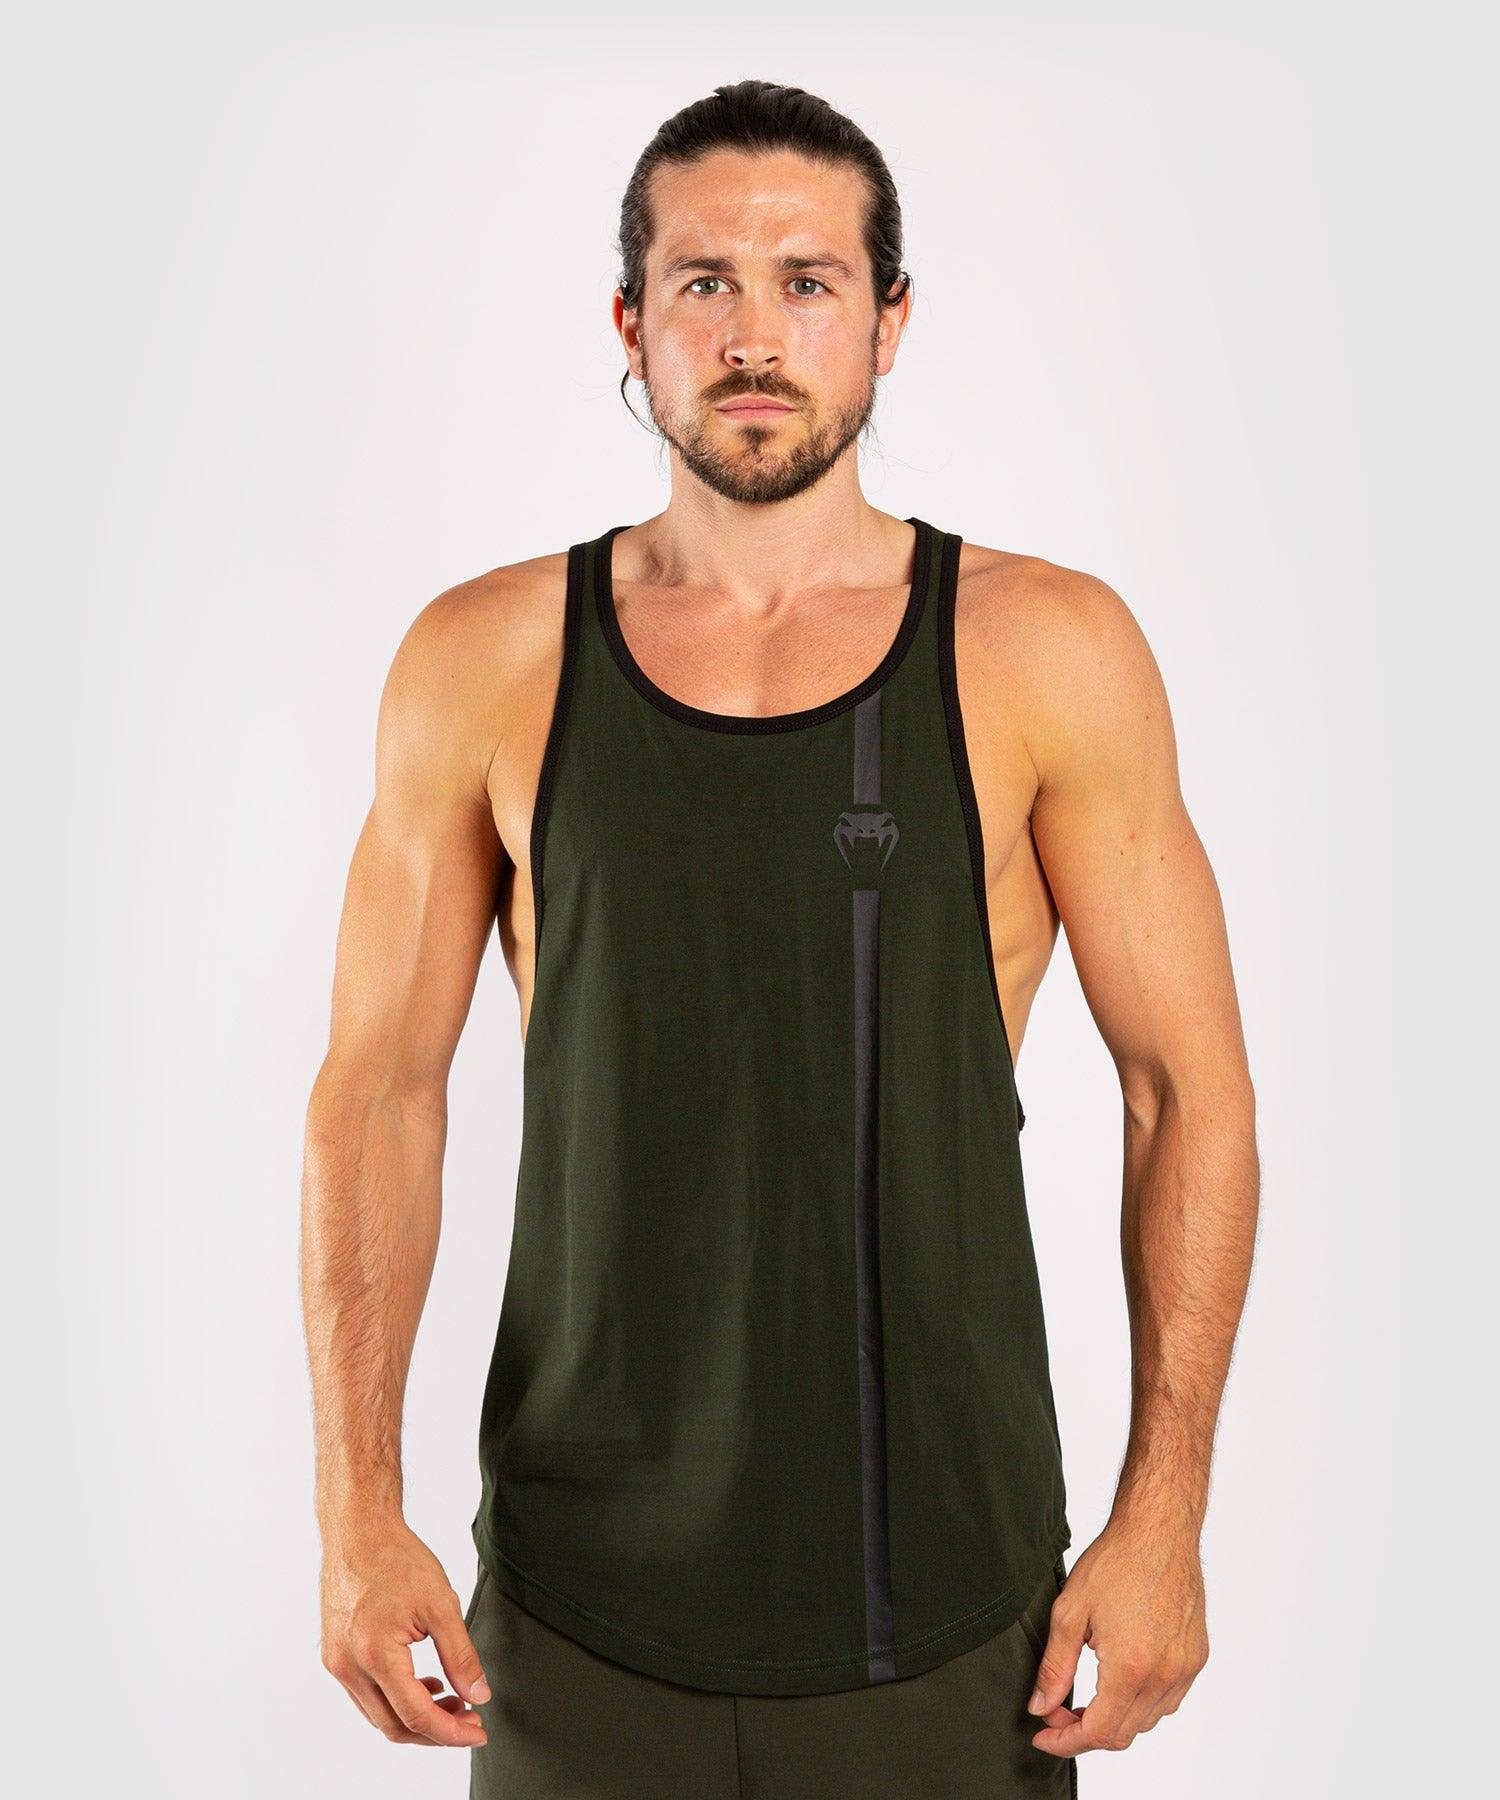 Venum Cutback 2.0 Tank Top - Khaki/Black picture 1